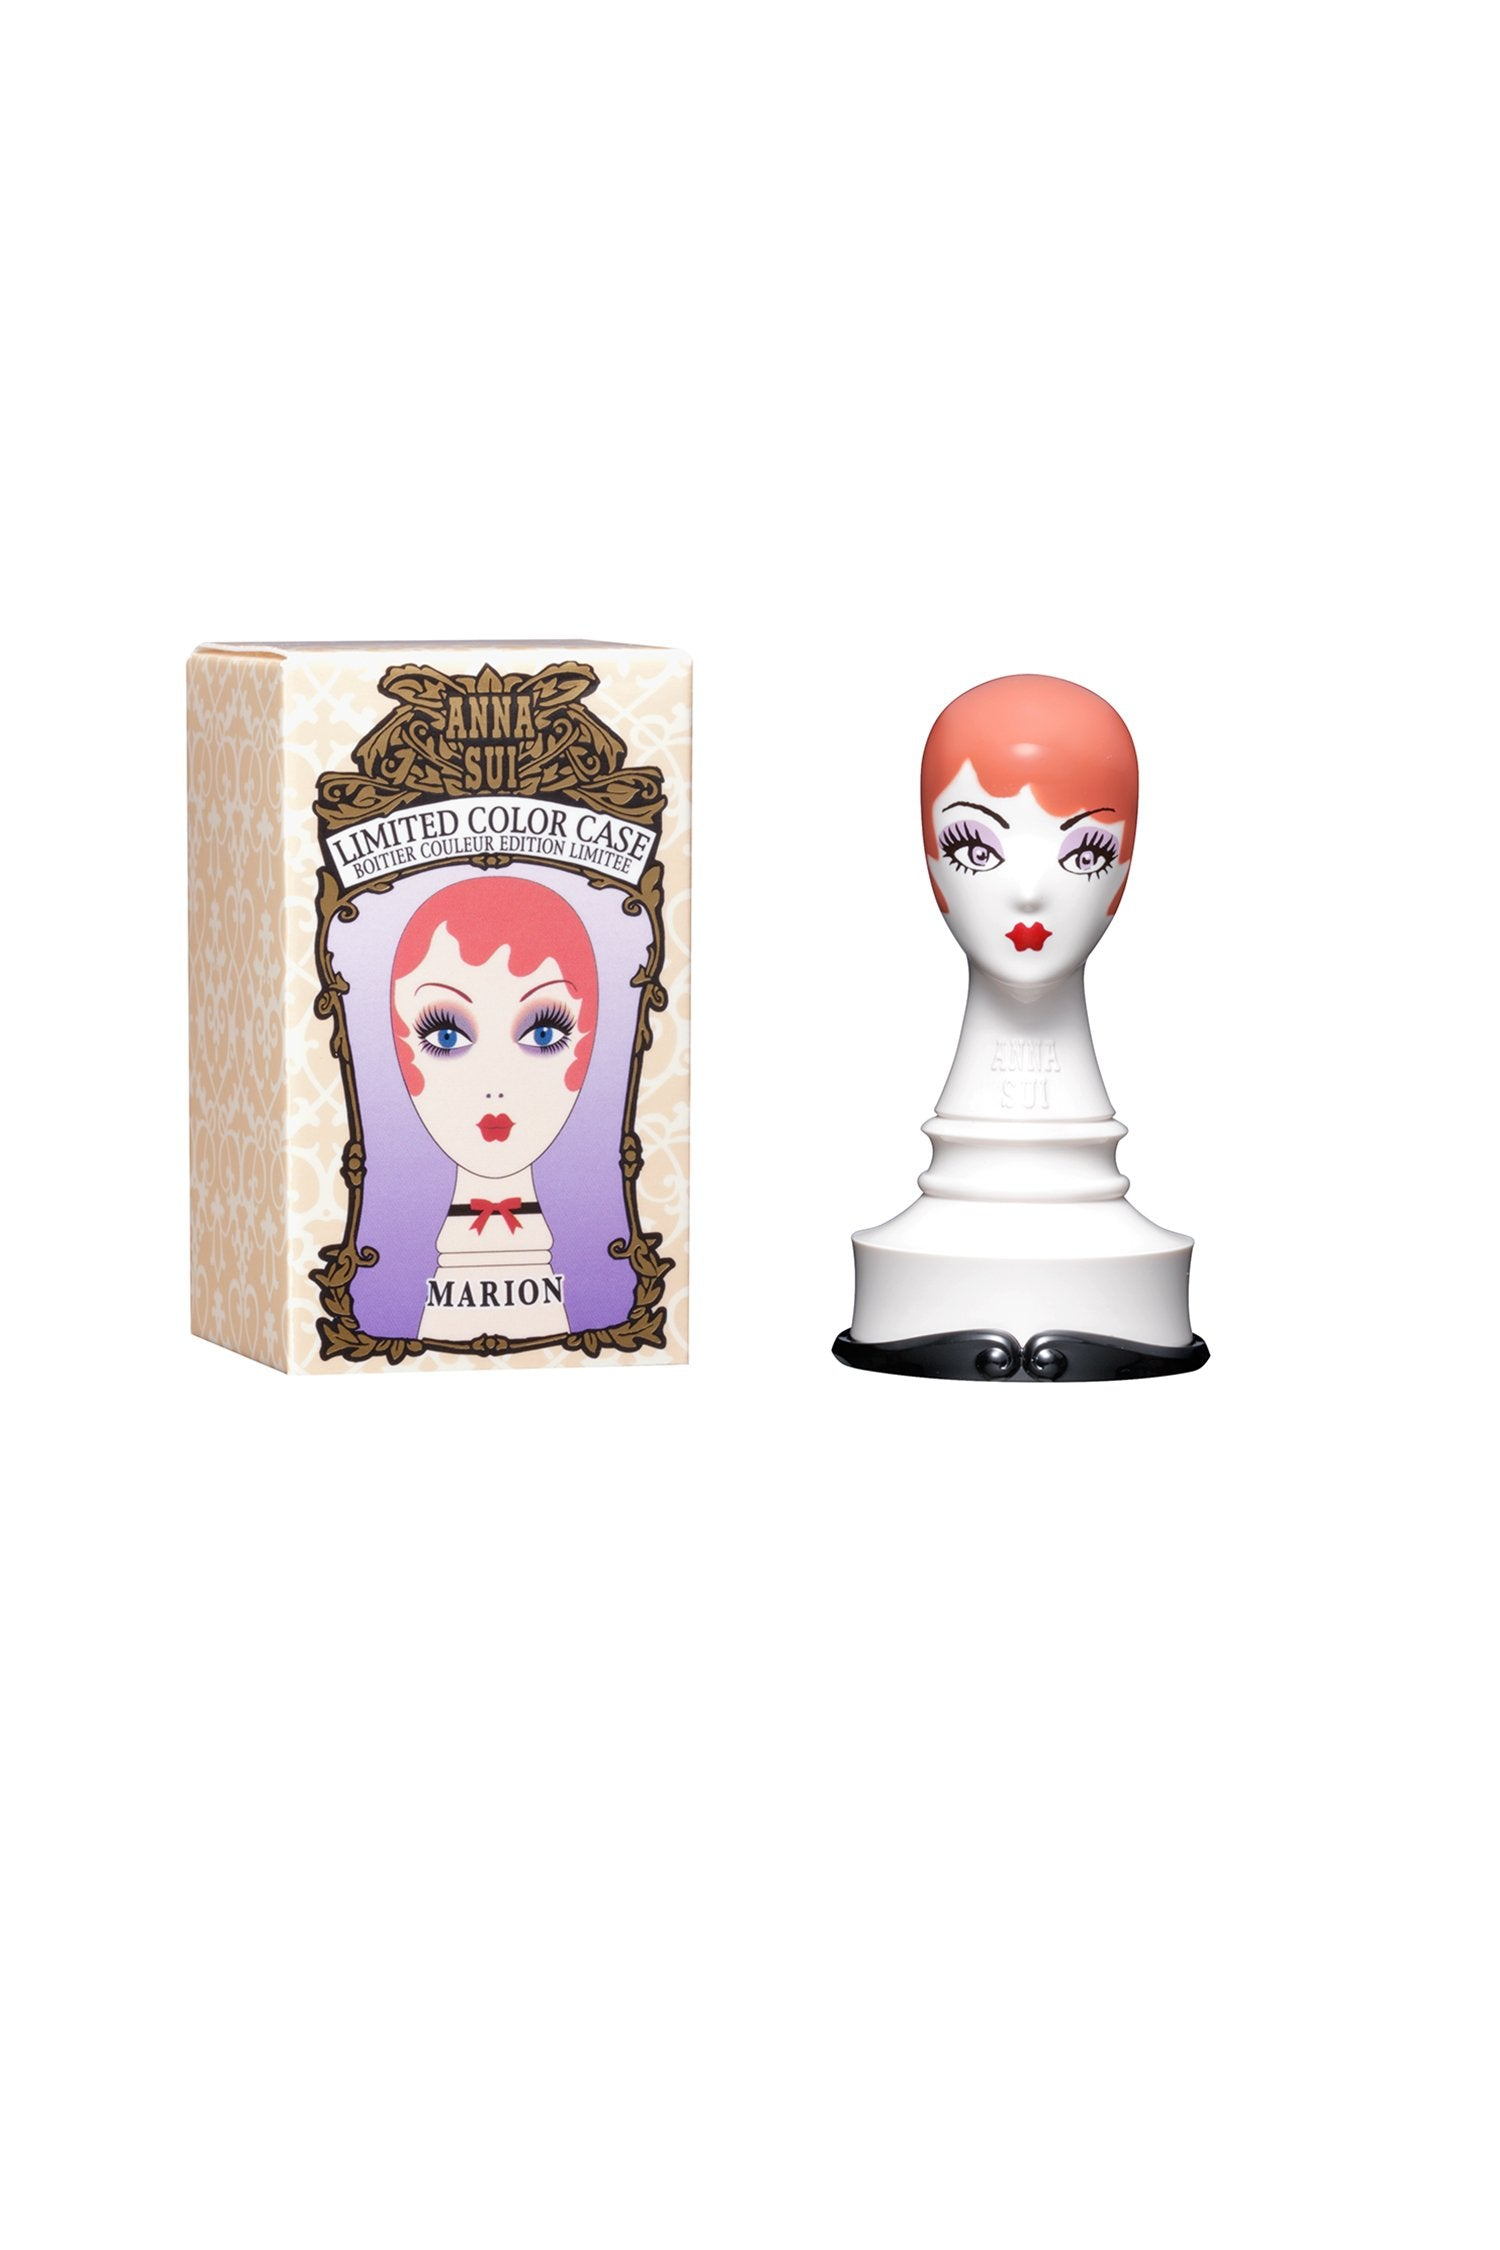 New: Limited Edition Dolly Head Color Case - Anna Sui